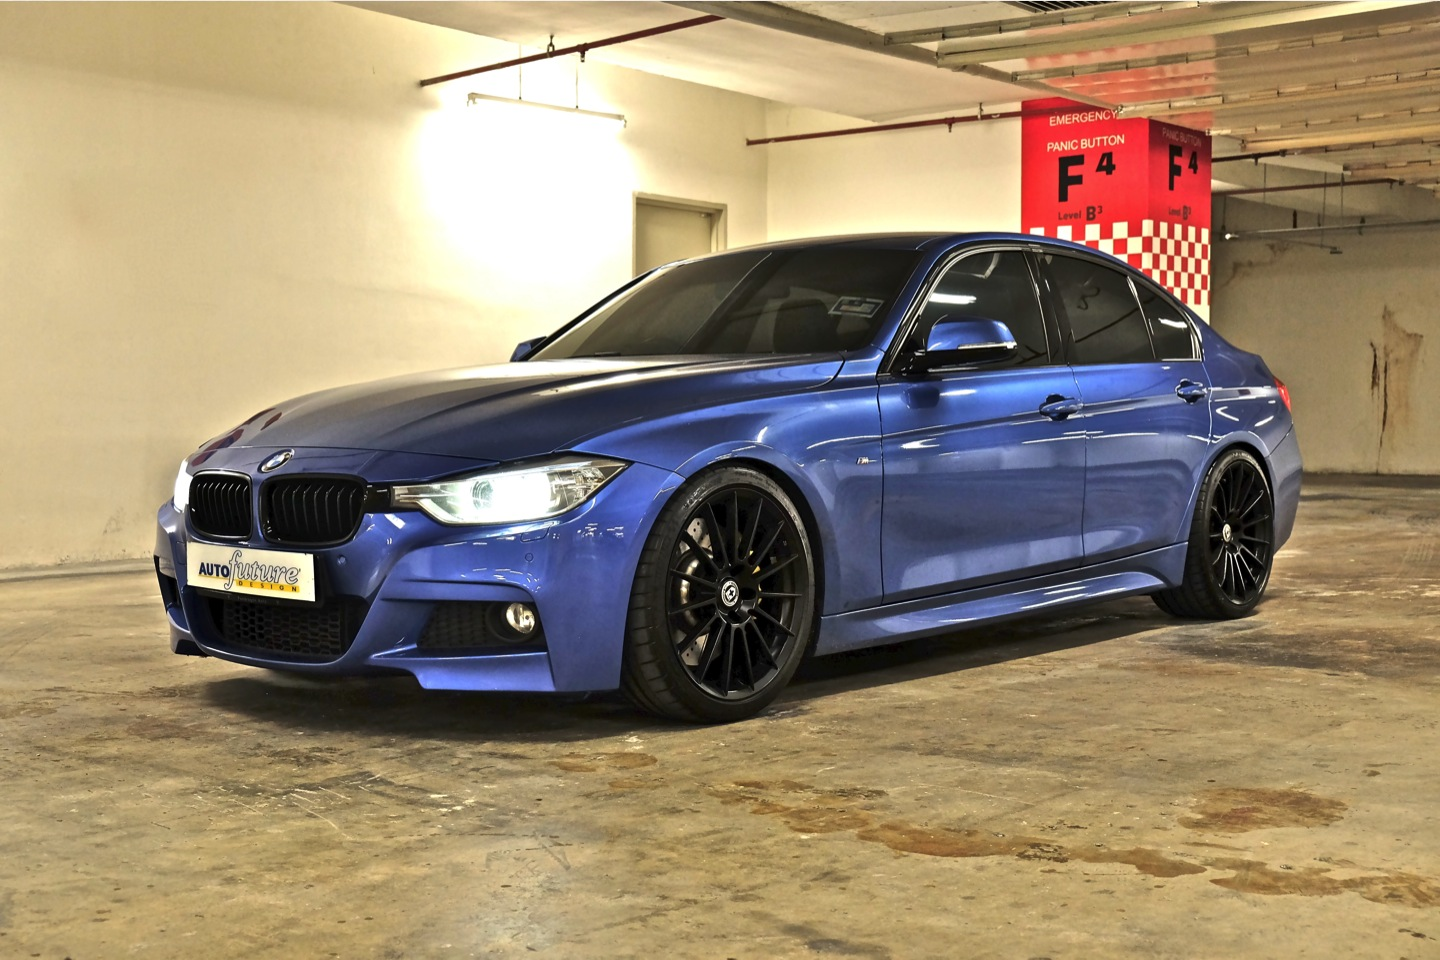 Copied Amp Slammed With Another 3 Series Bmw F30 Equipped